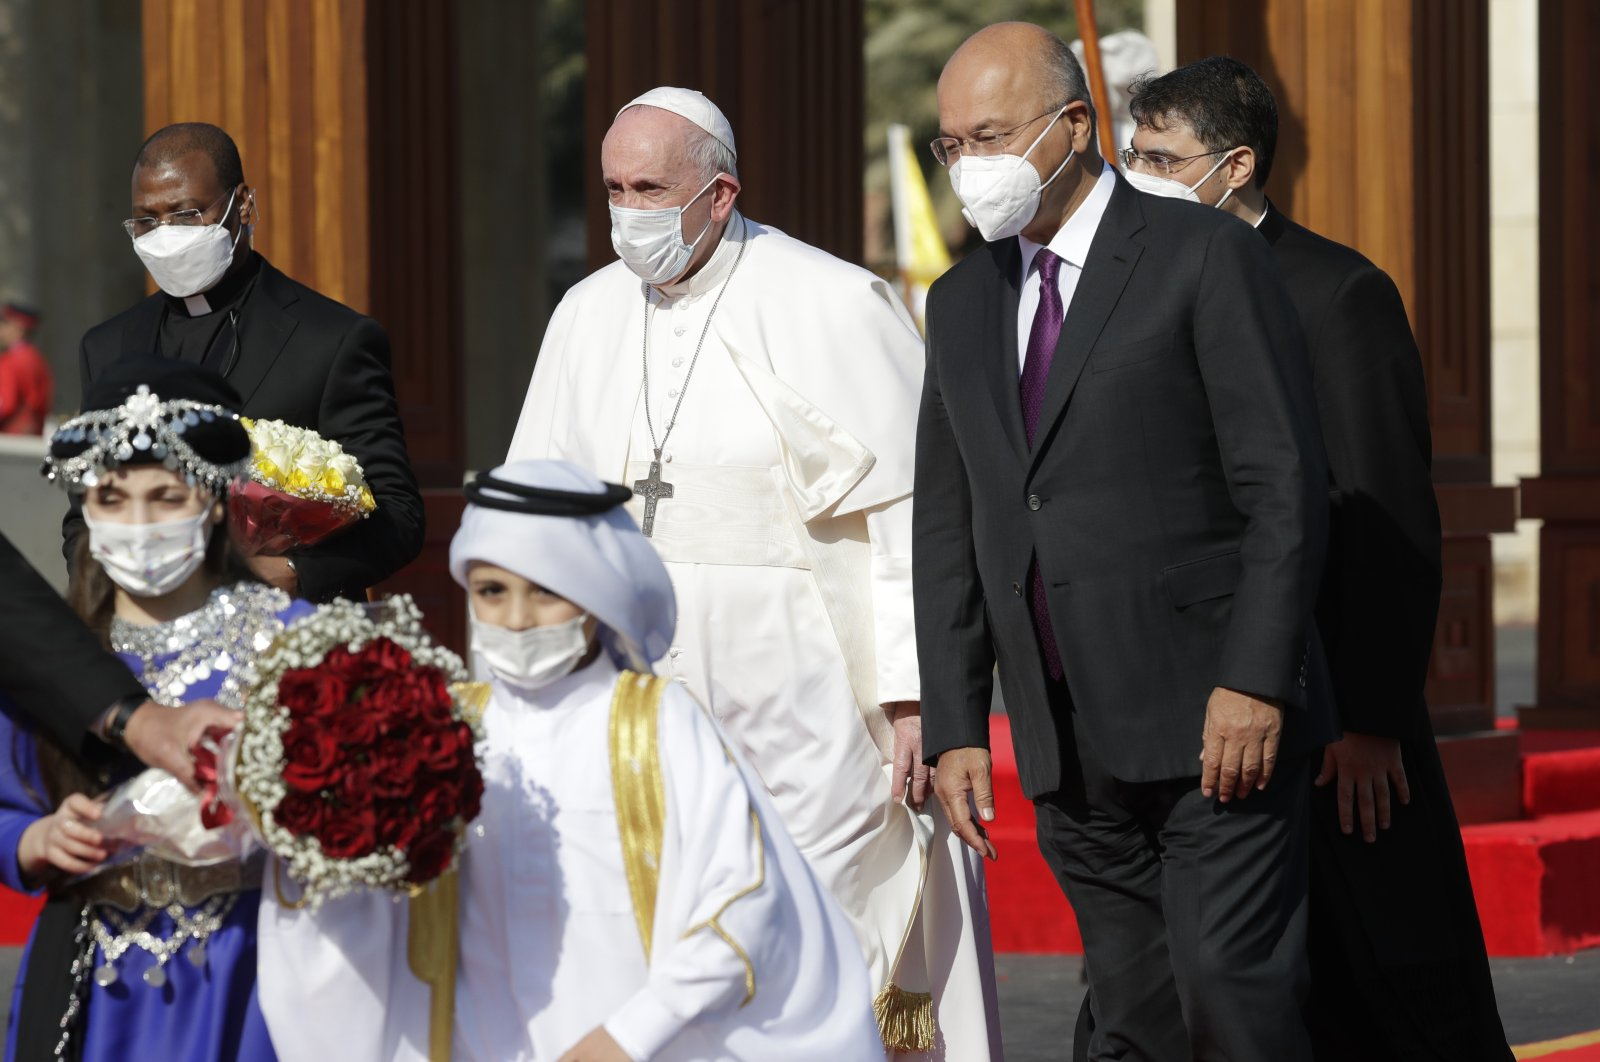 Pope Francis is welcomed by Iraqi President Barham Salih, at Baghdad's Presidential Palace, Iraq, Friday, March 5, 2021. (AP Photo)